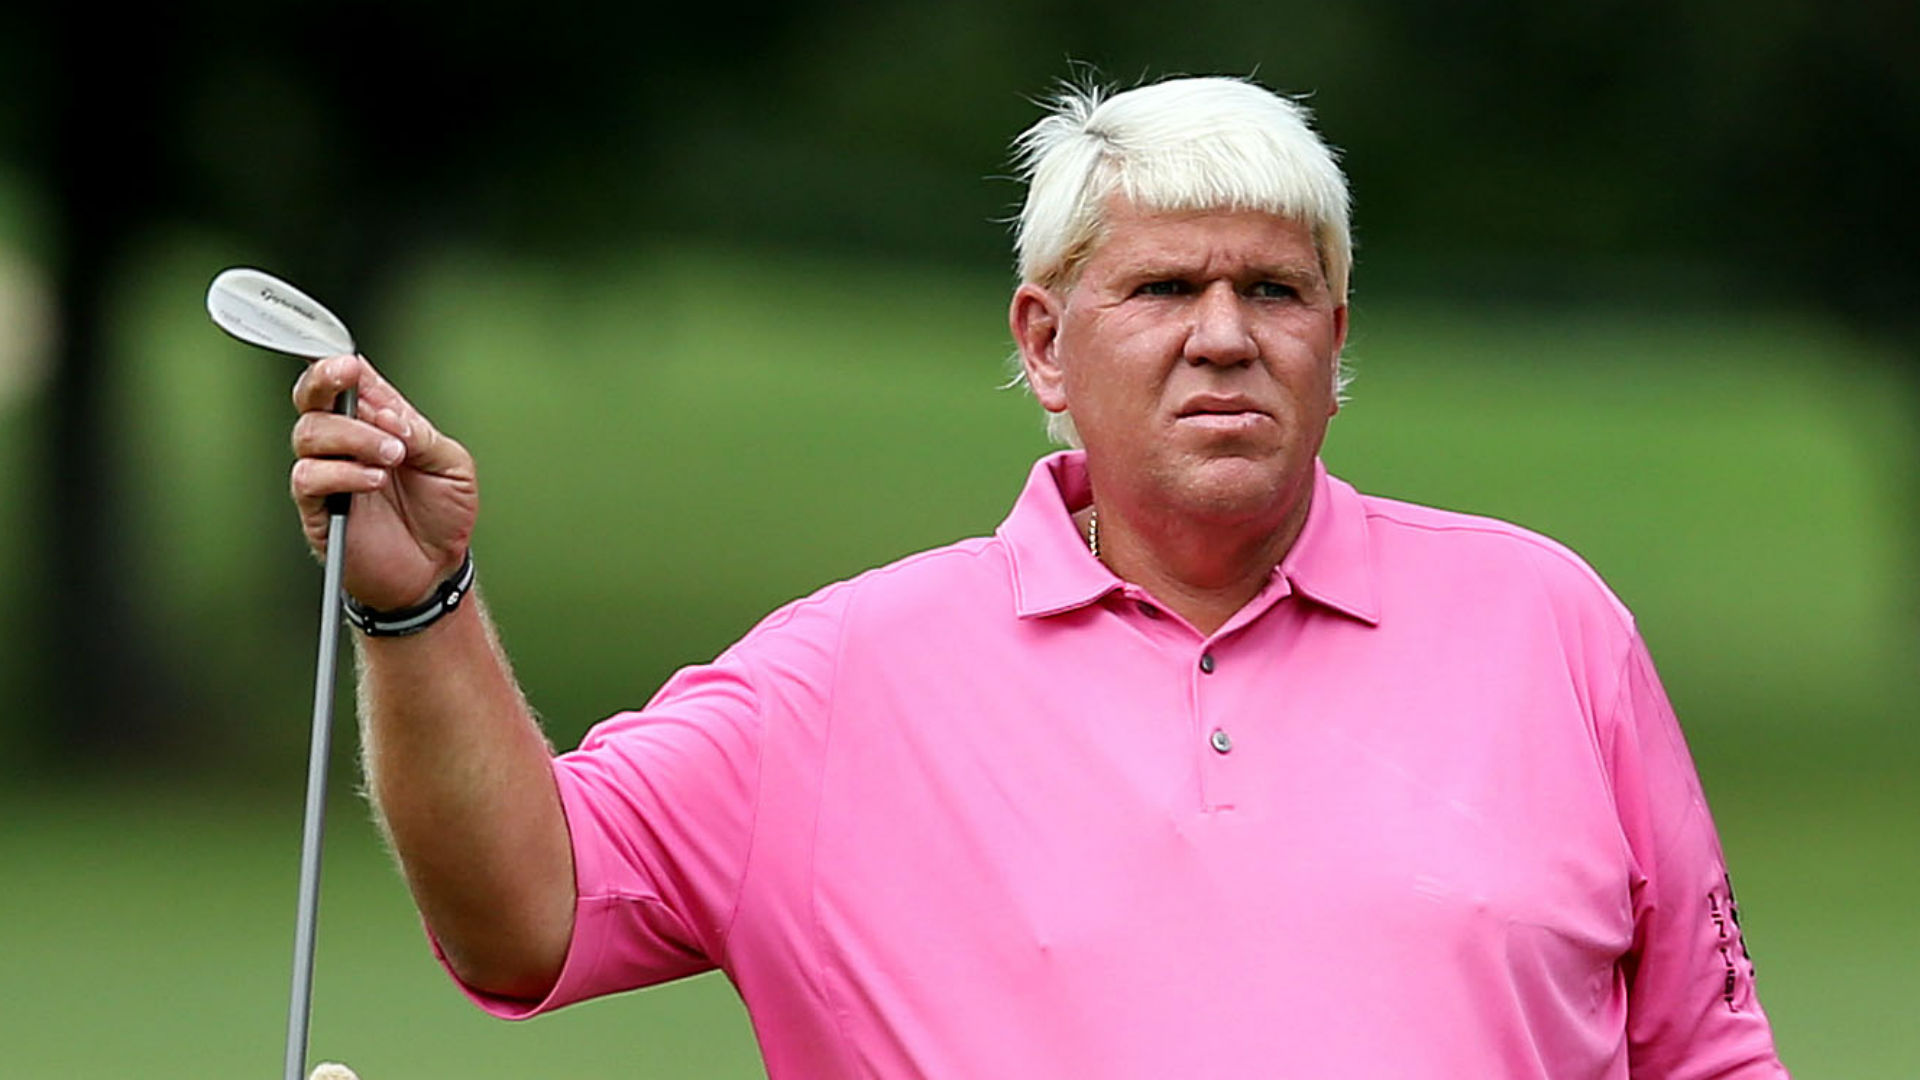 how tall is john daly